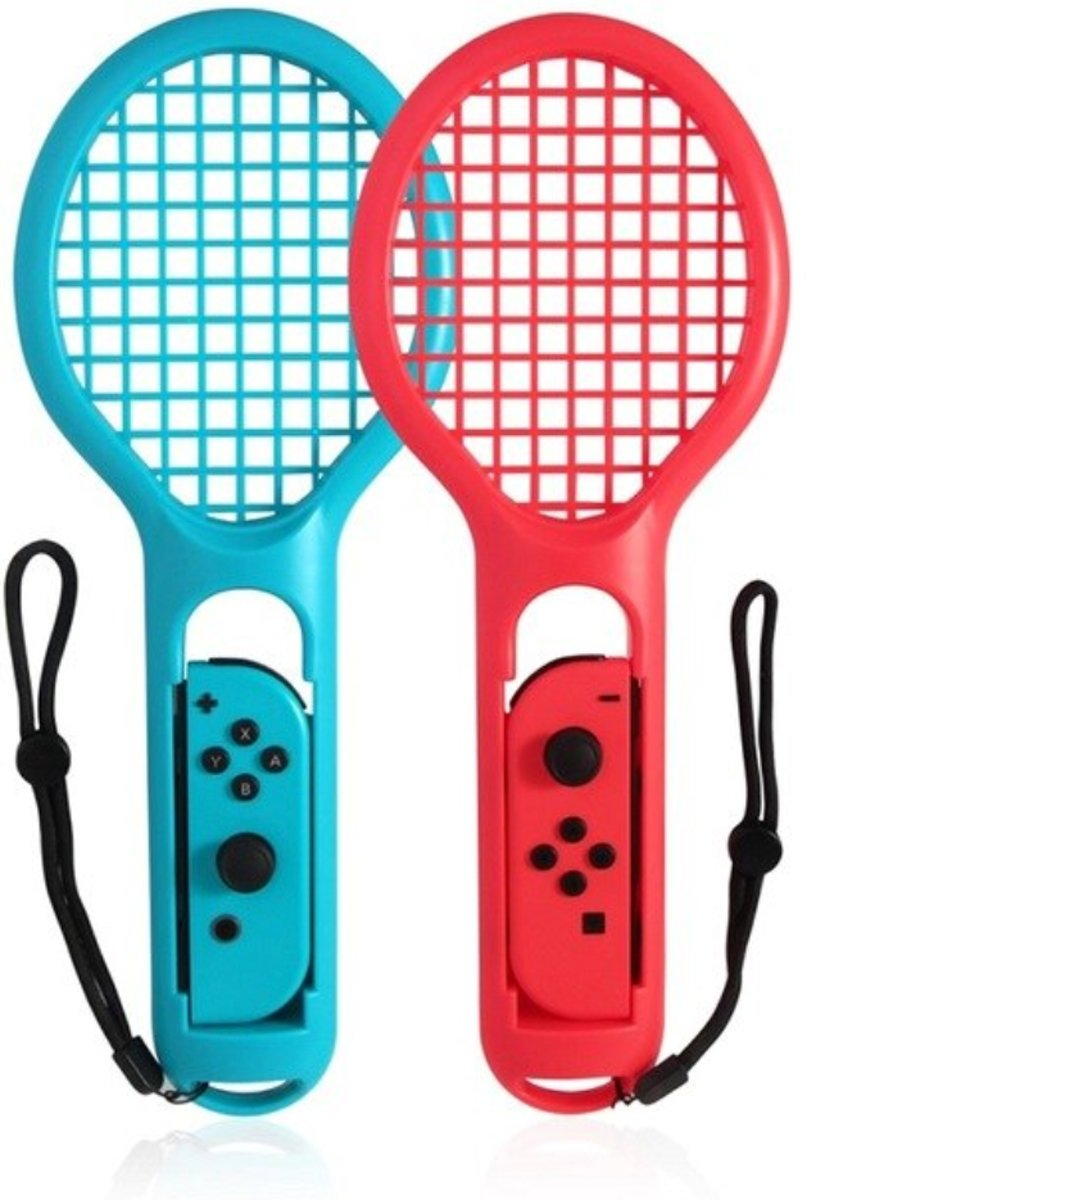 Nintendo Switch Tennis Racket - 2 Tennis Rackets - Rood / Blauw